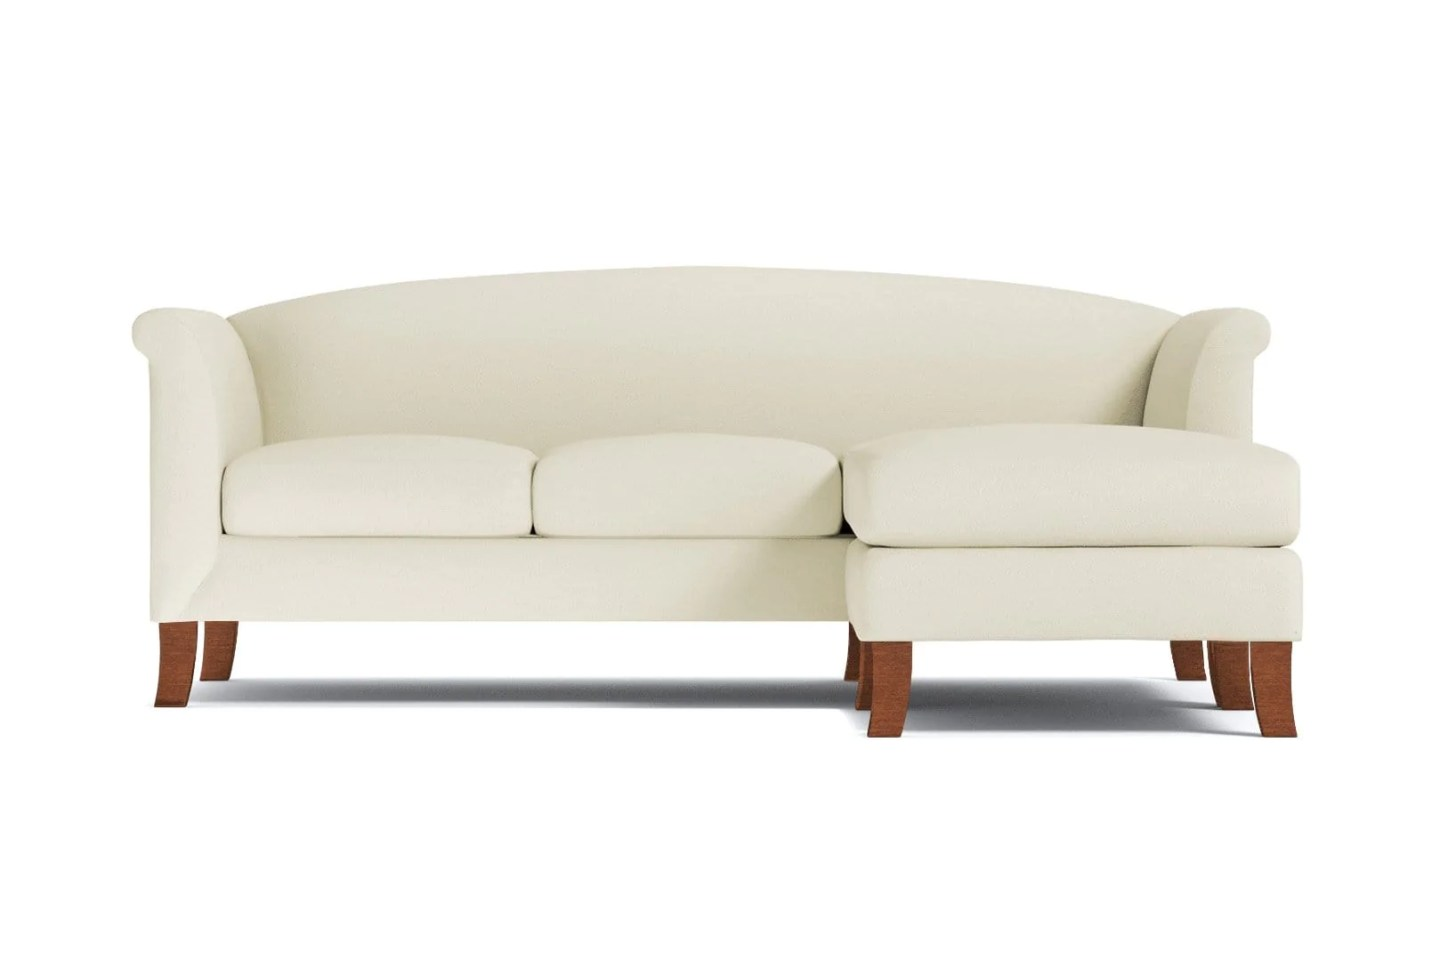 Albright Reversible Chaise Sofa - Beige -  Flip Sectional Made in the USA - Sold by Apt2B